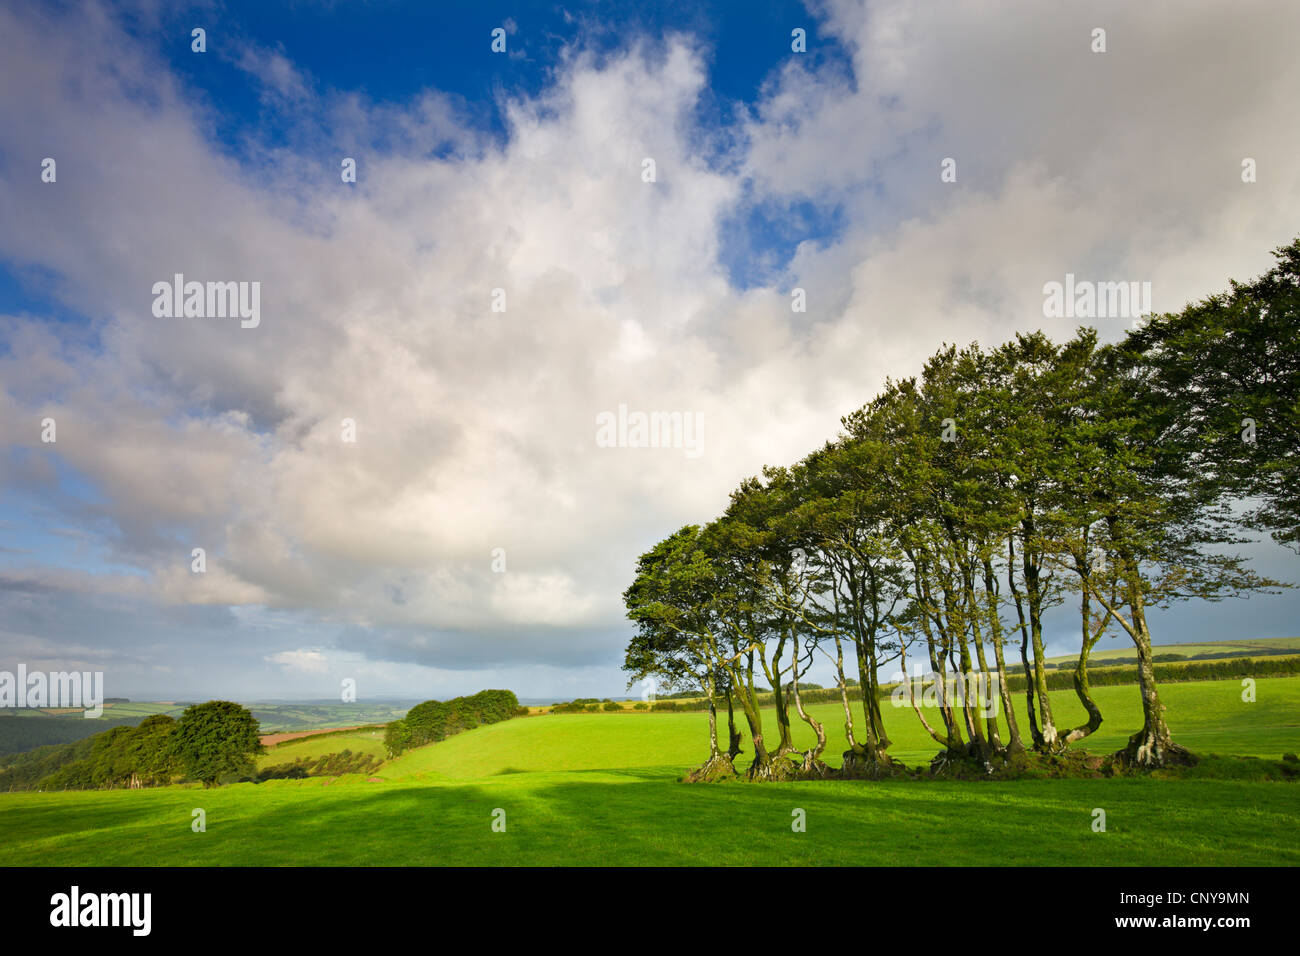 Ancient beech tree hedge in a field in Exmoor National Park, Devon England. Summer (July) 2009. - Stock Image